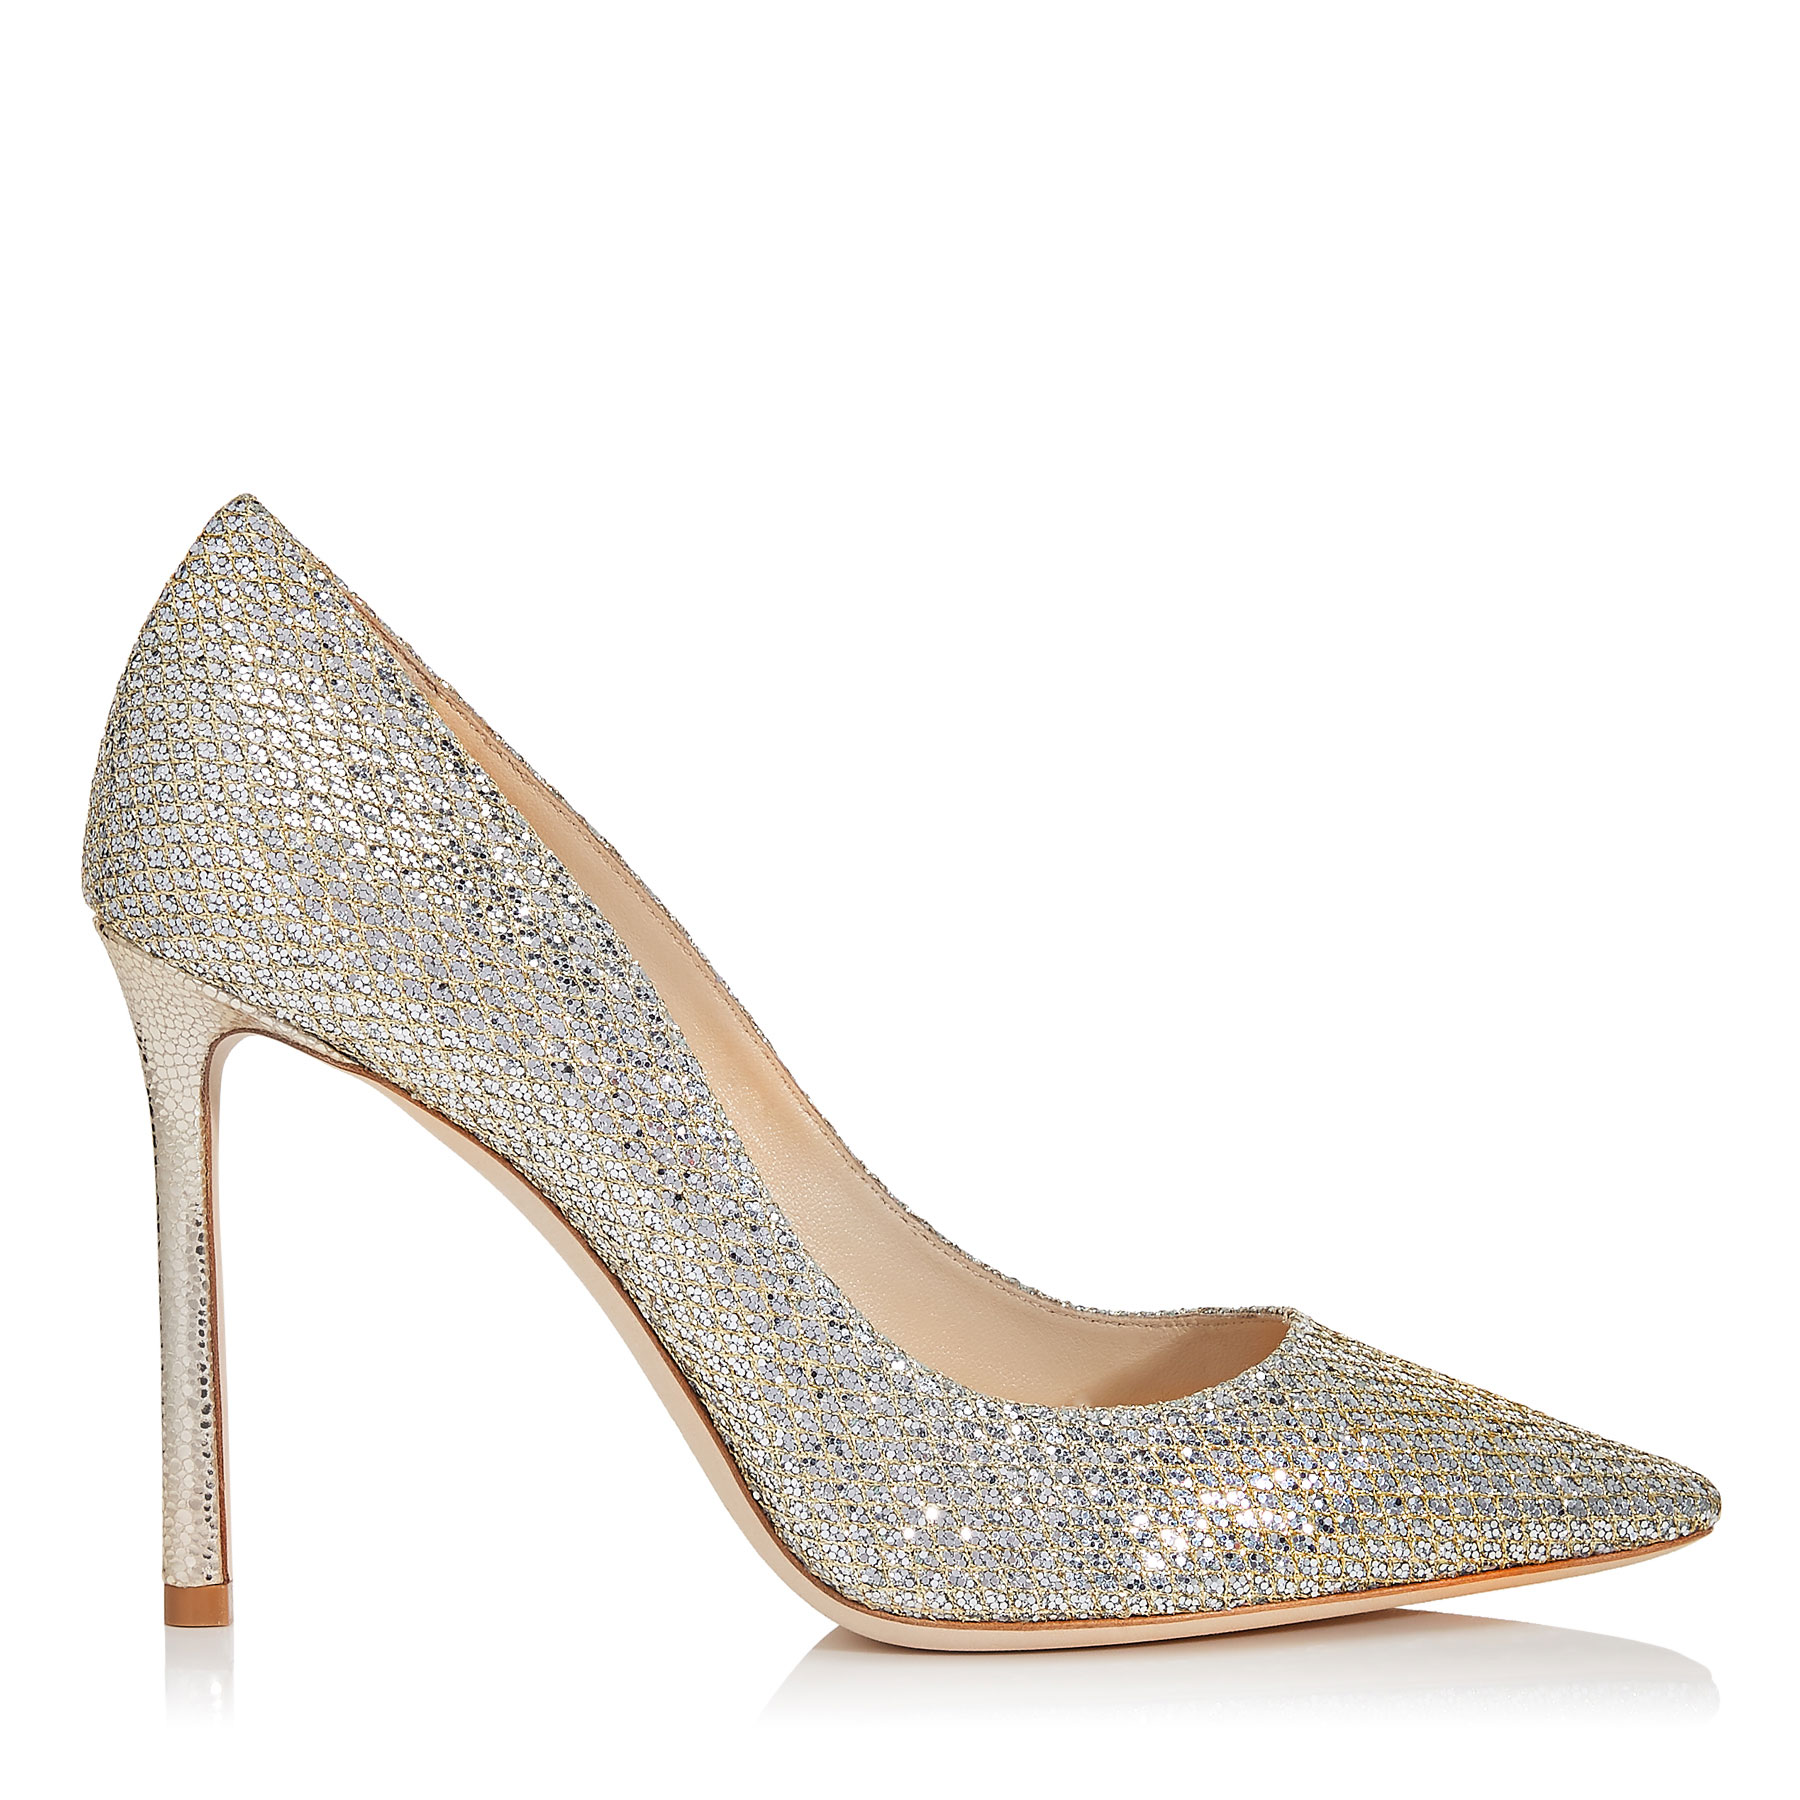 ROMY 100 Champagne Glitter Fabric Pointy Toe Pumps by Jimmy Choo